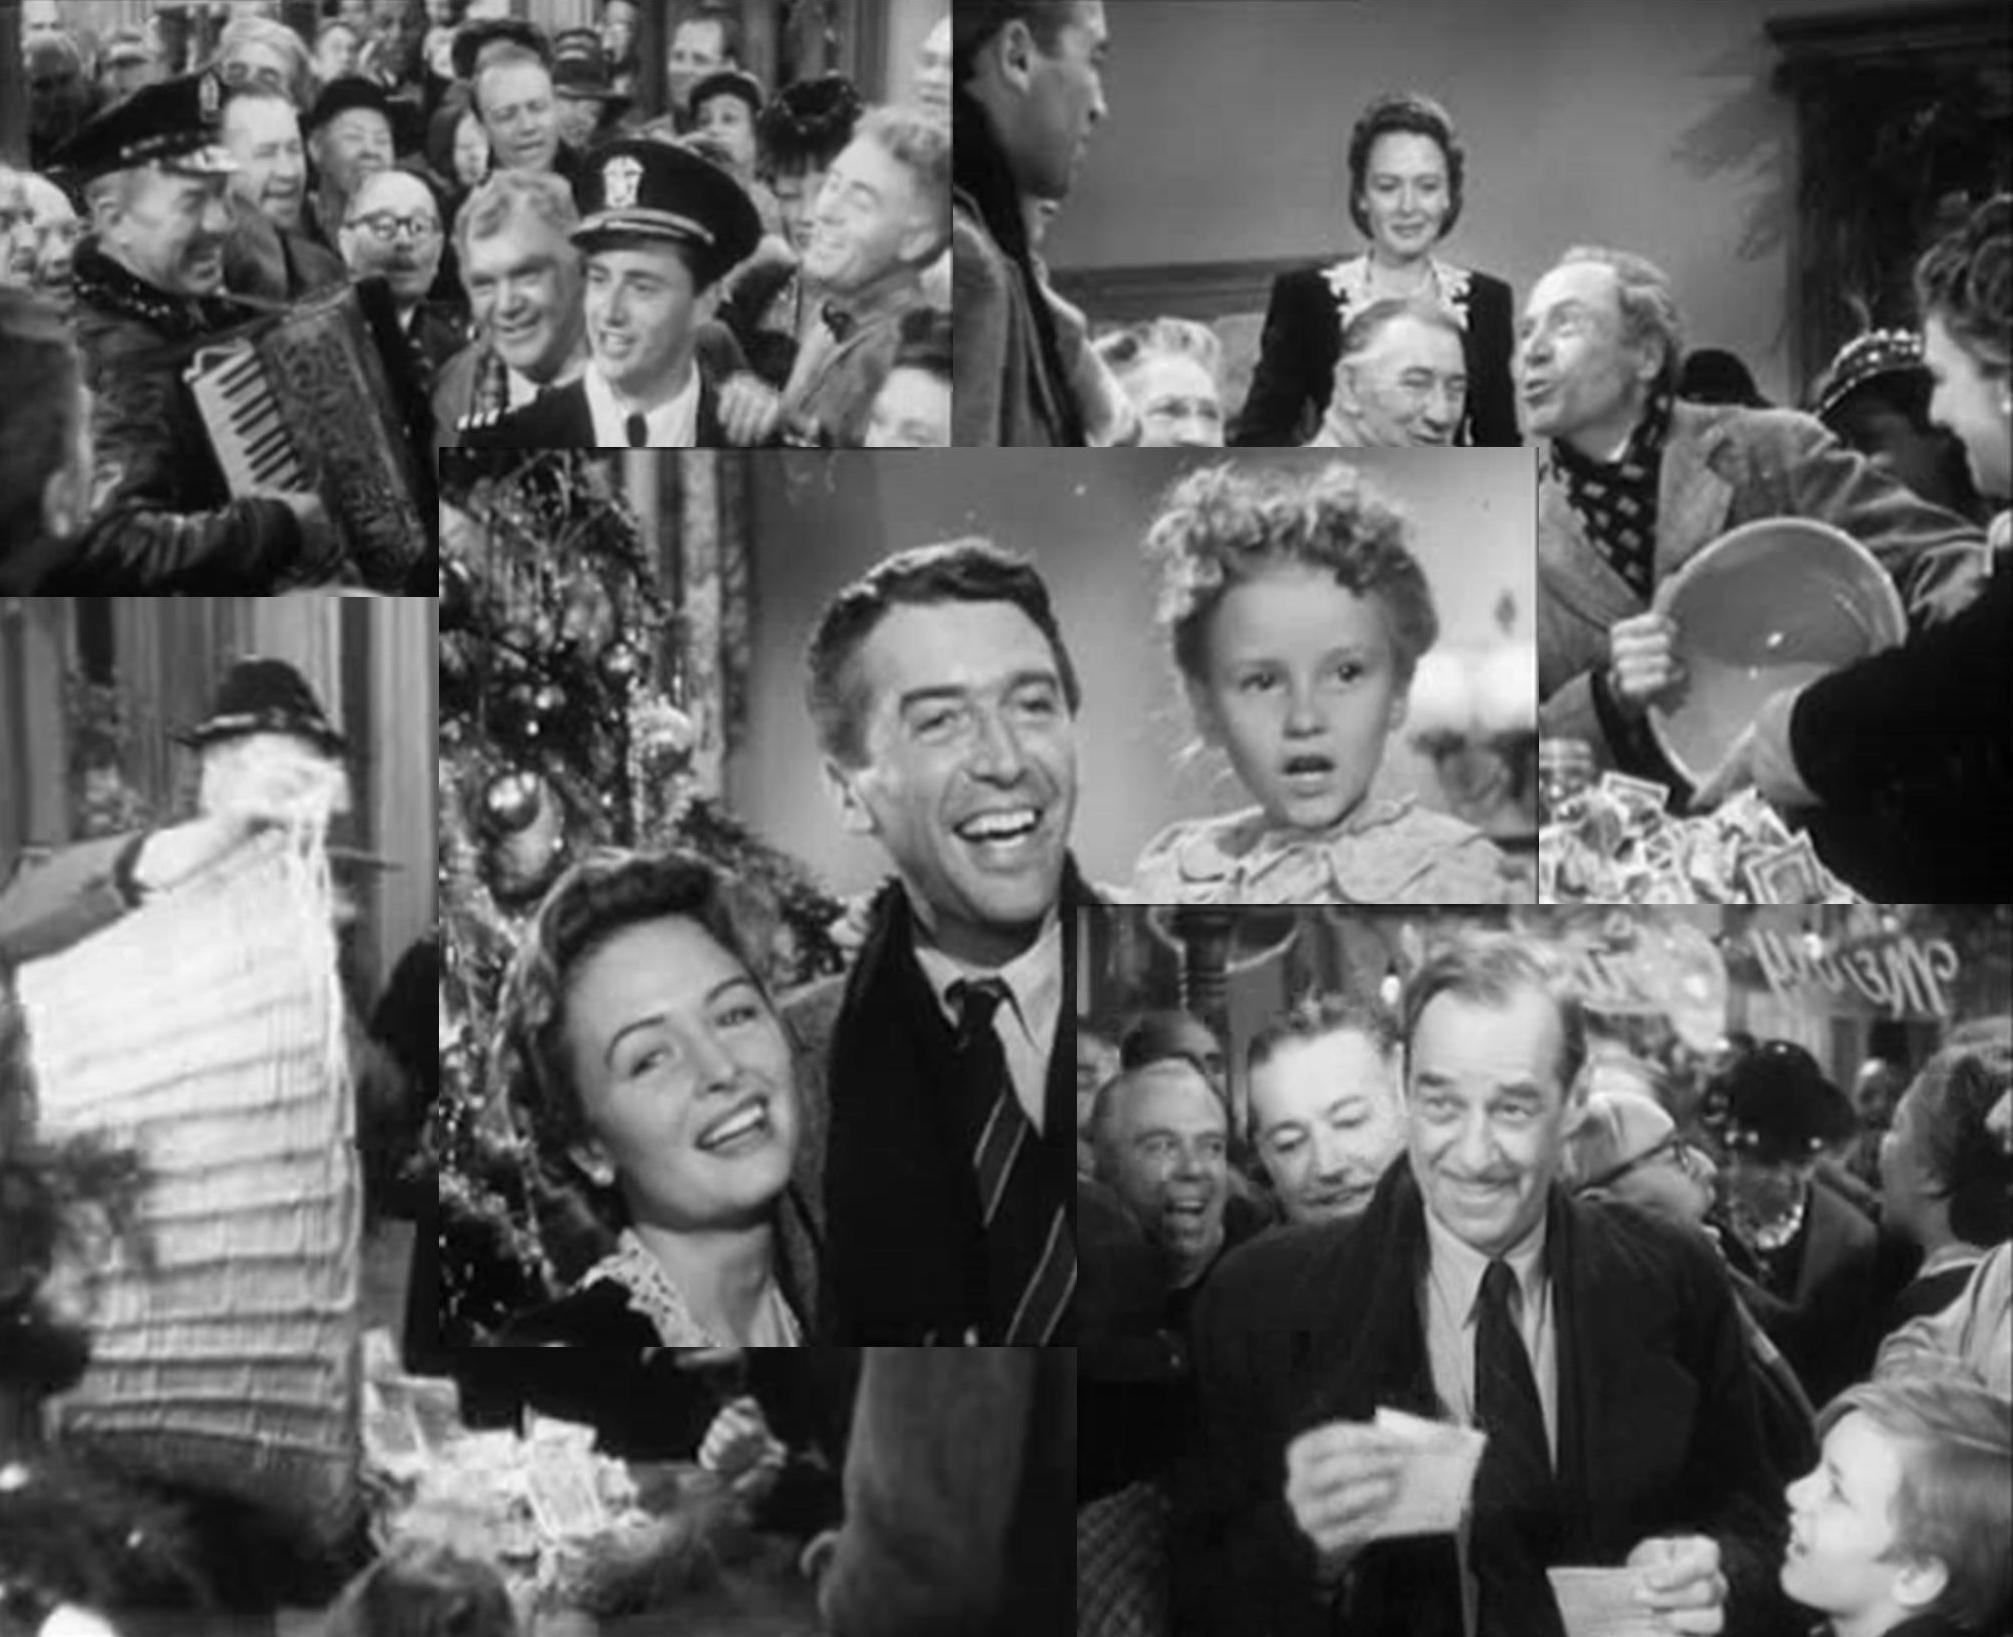 Fileits A Wonderful Life Finishjpg Wikimedia Commons